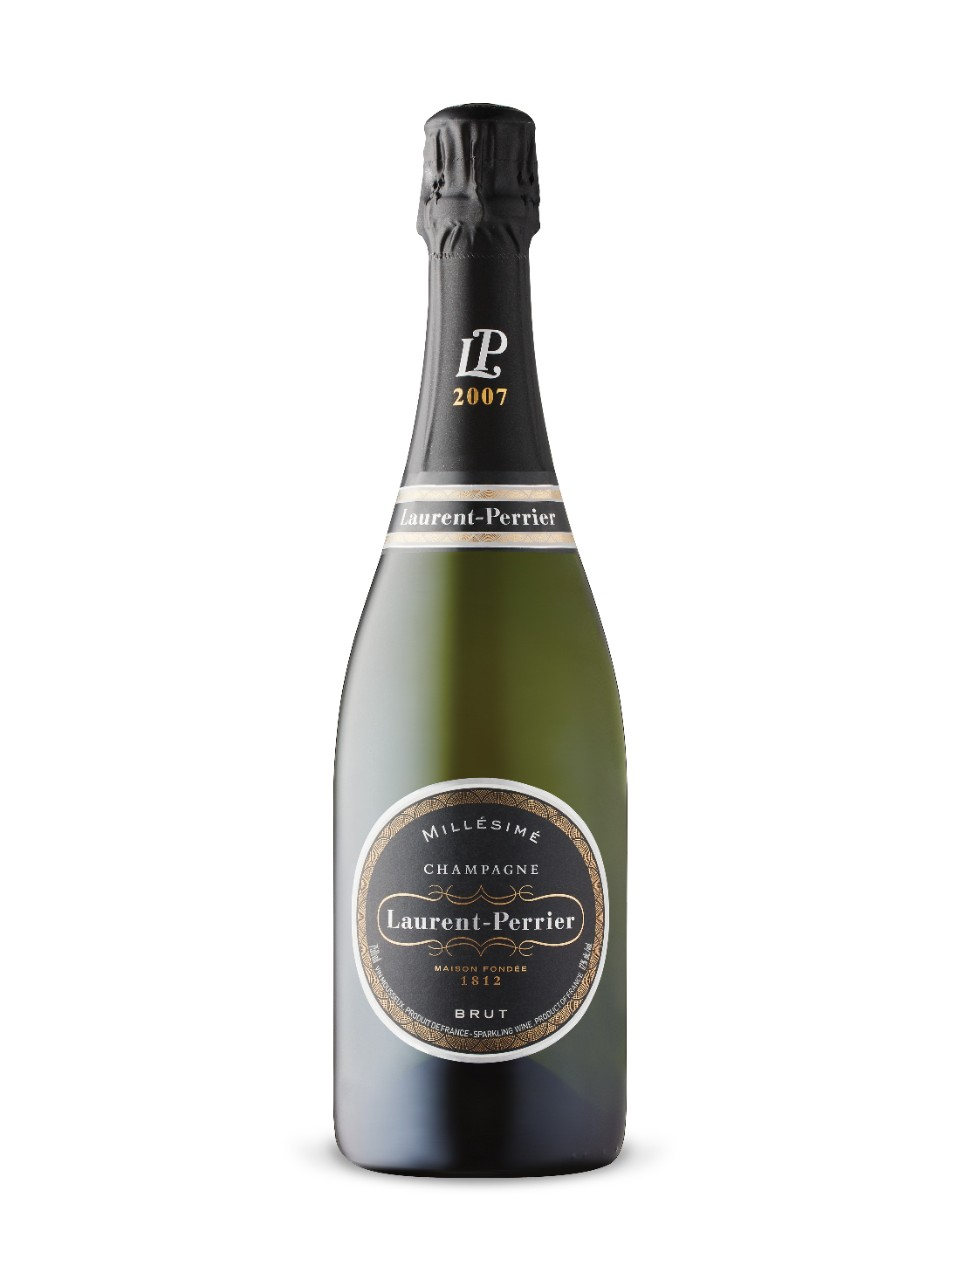 Image for Laurent-Perrier Brut Millésimé Champagne 2007 from LCBO